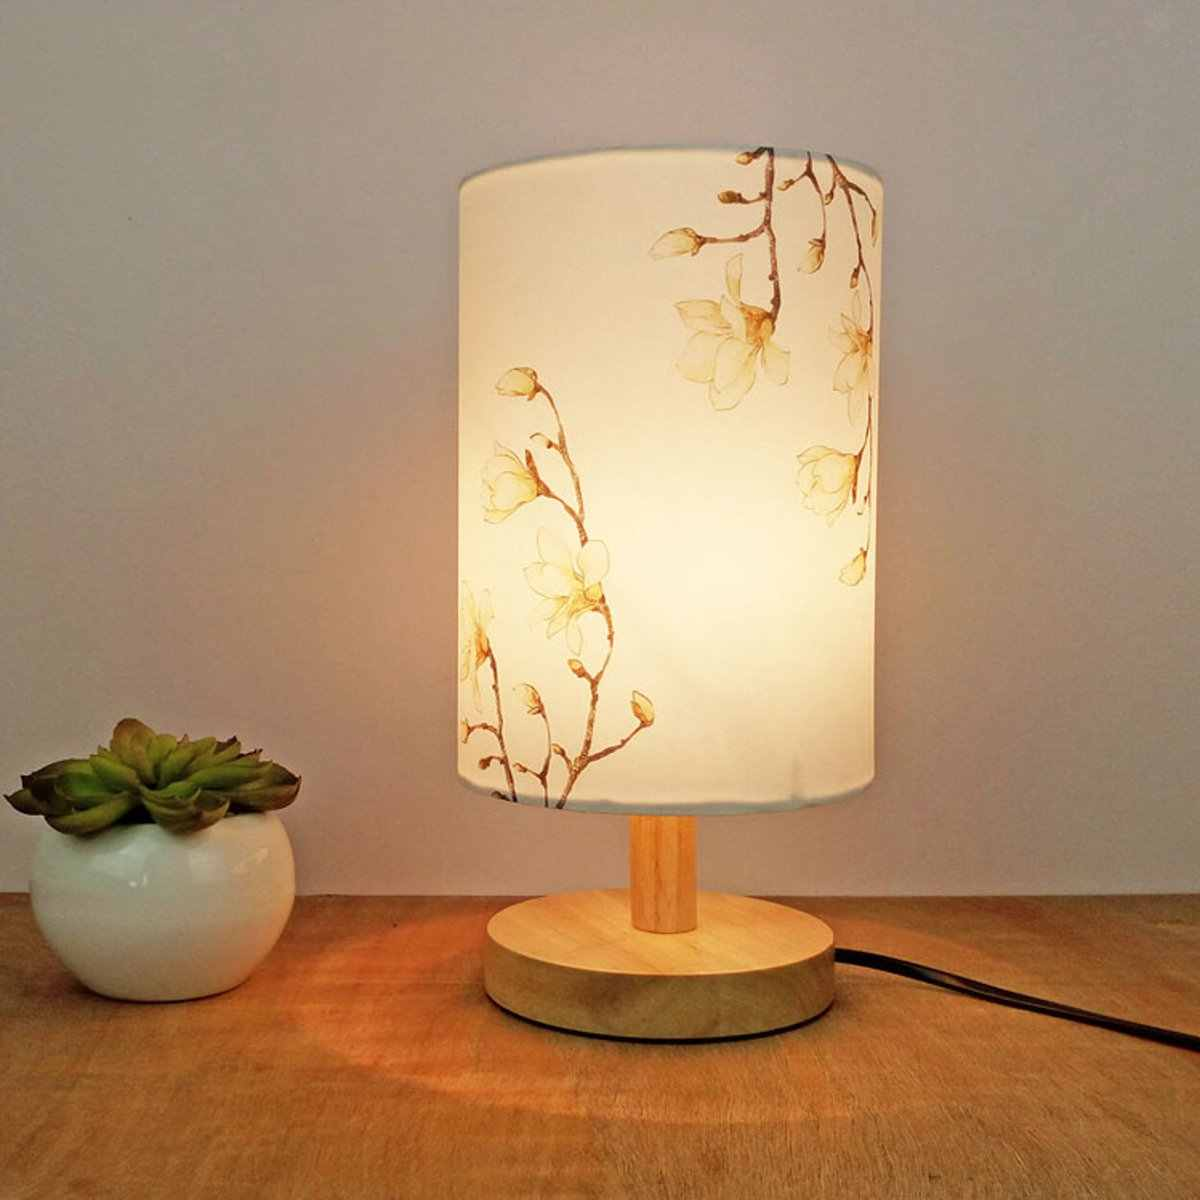 Small Lampshade Floral Bird Lamp Shade Table Ceiling Light Cover Vintage Art